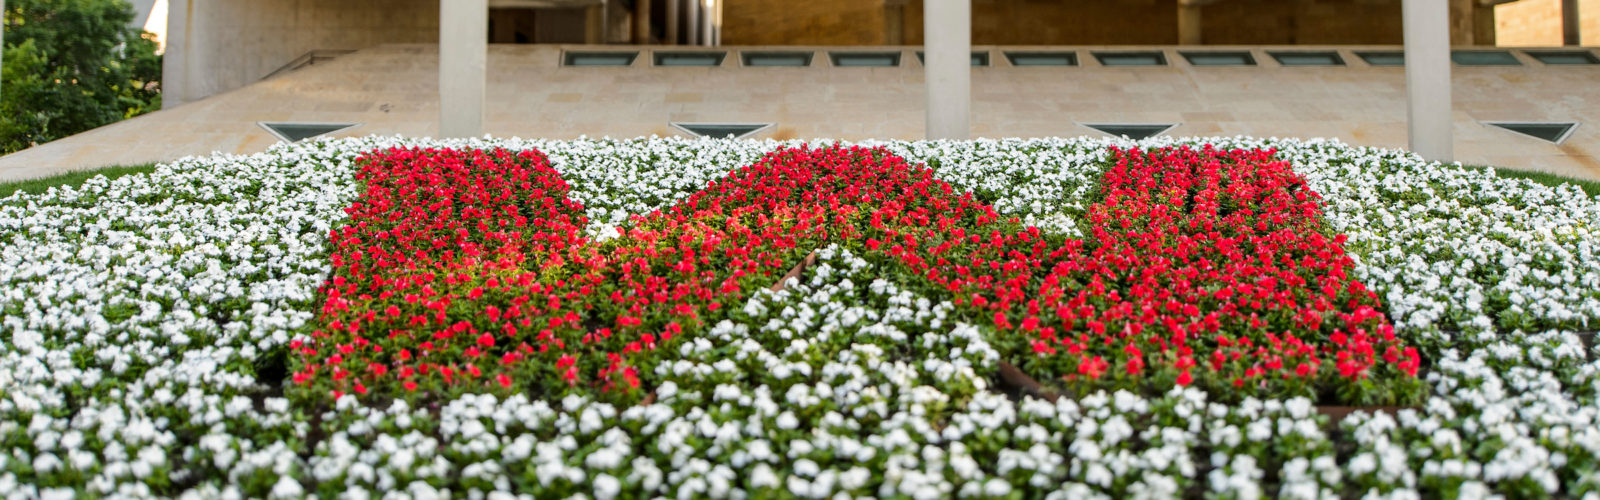 "A flowerbed of white and red flowers creates a ""W"" shape."